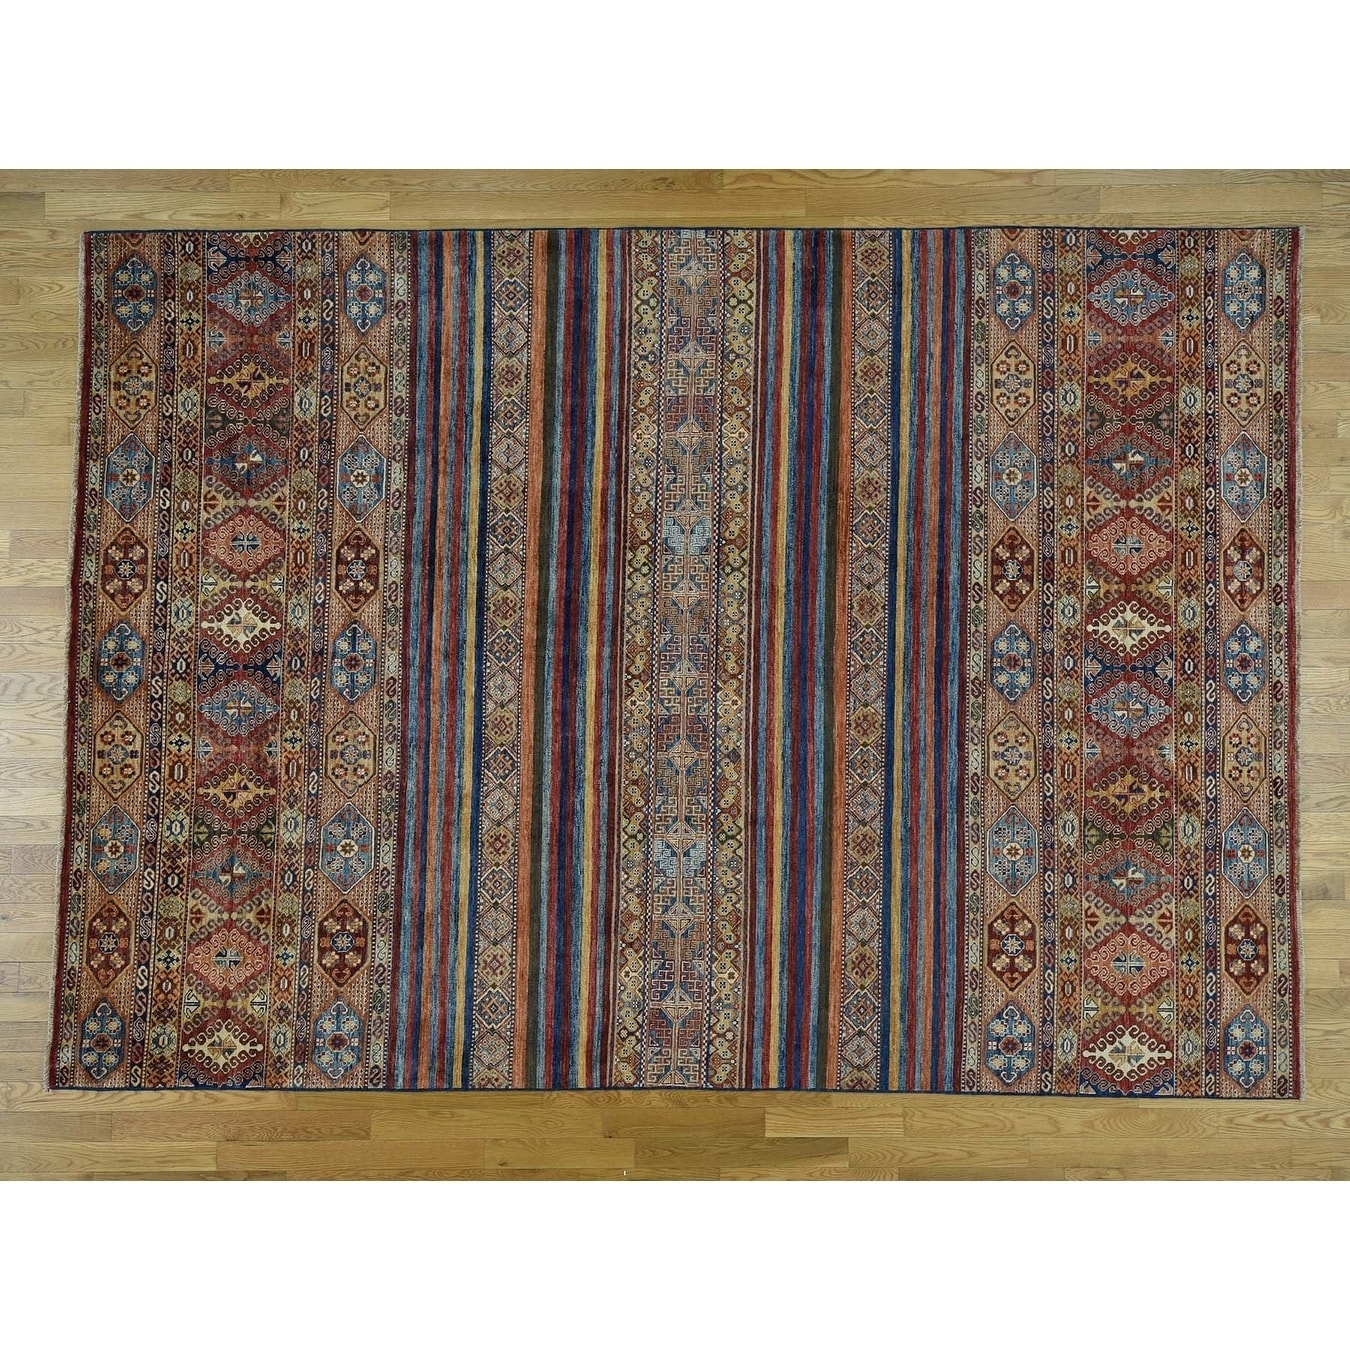 Hand Knotted Multicolored Kazak with Wool Oriental Rug - 82 x 116